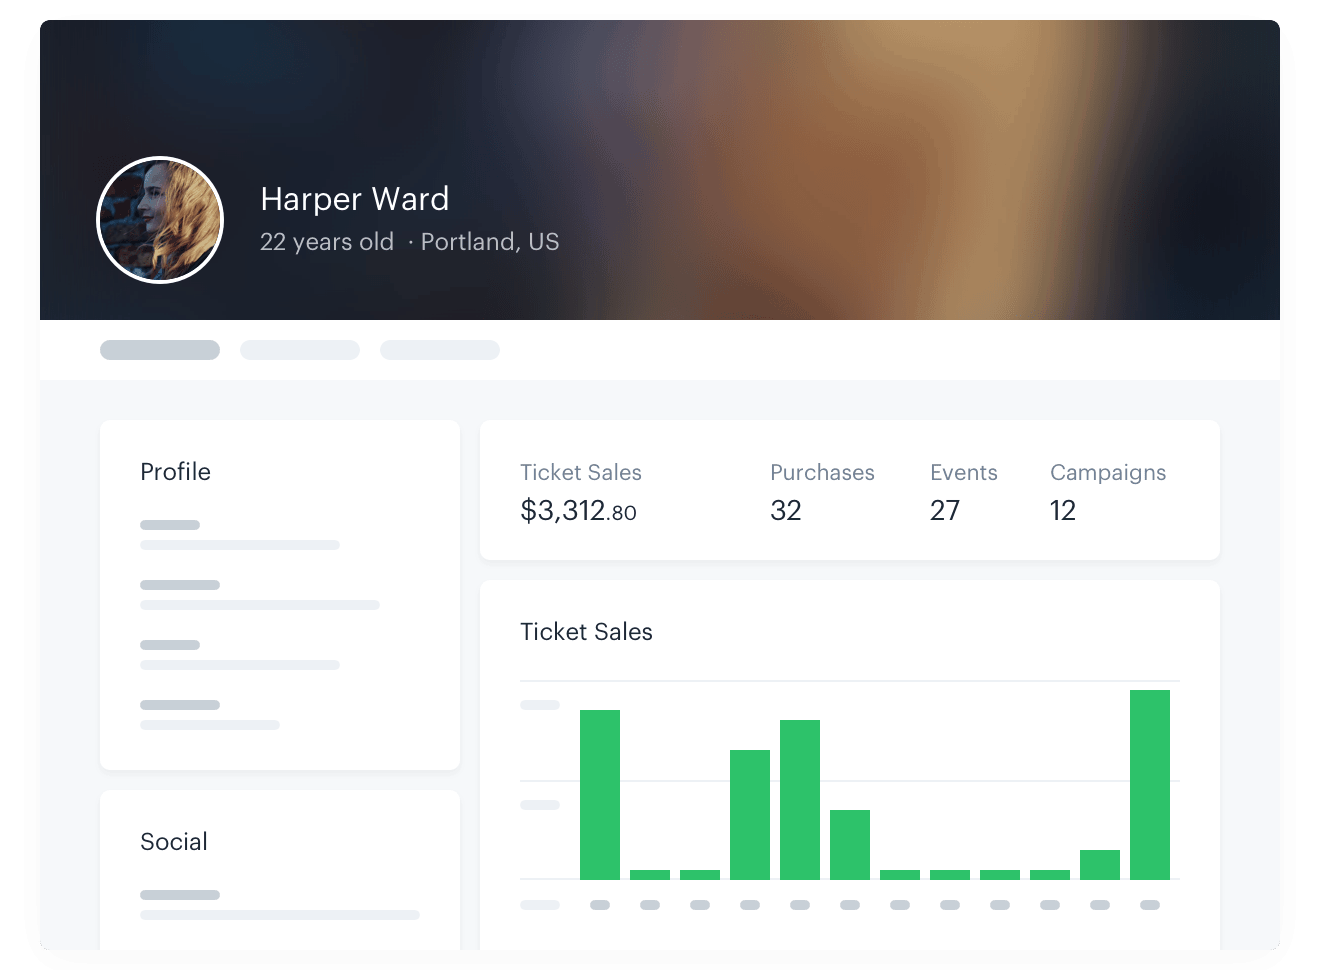 A screenshot of a customer profile on the Audience Republic platform